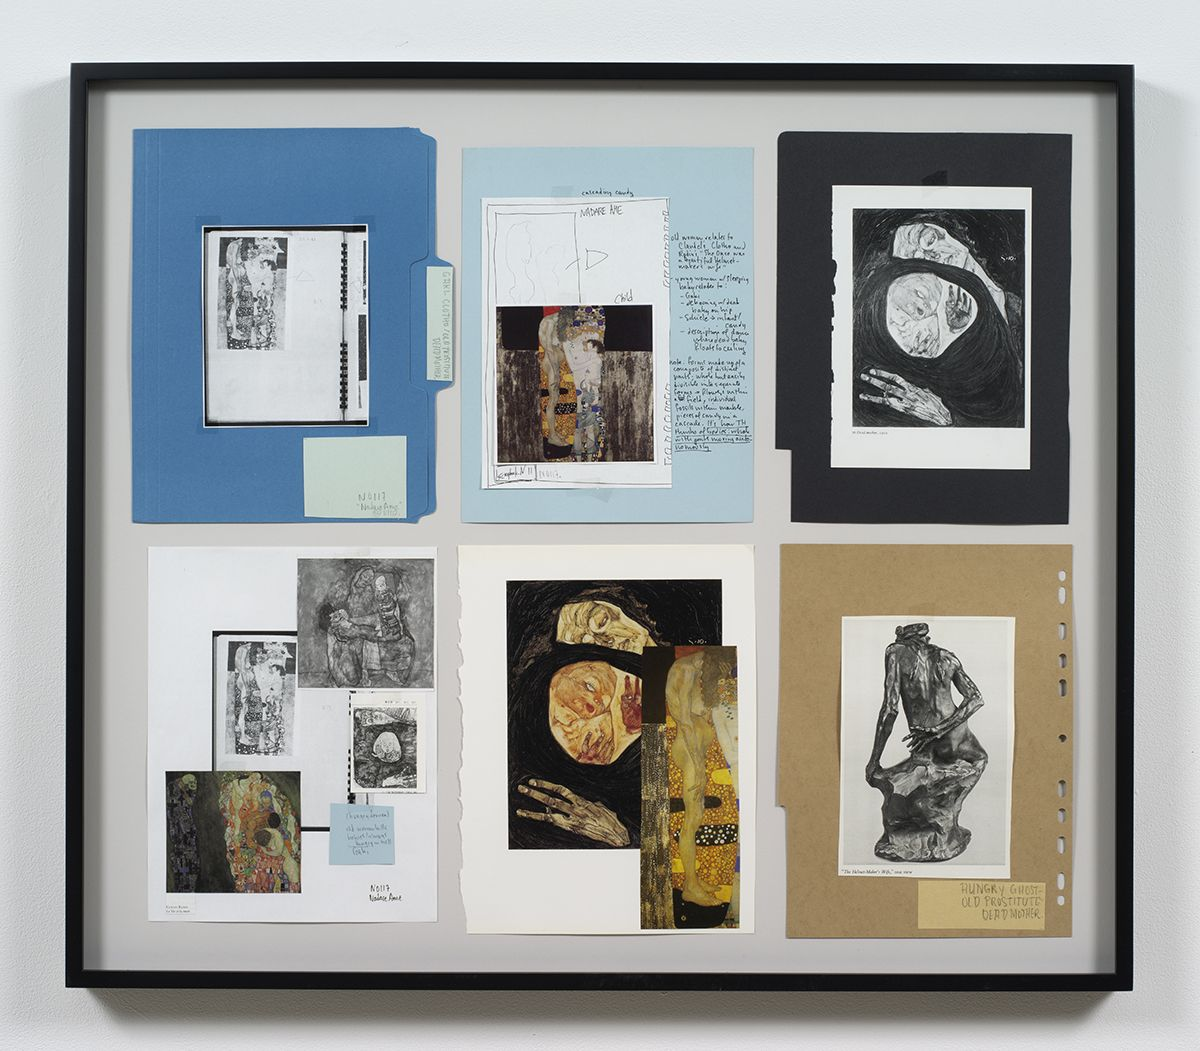 Ankoku 32 (Resource folder: Gaki-Clotho / Old prostitute / Dead mother), 2012, Collage, 27 x 31 1/8 x 1 1/2 inches (68.6 x 79.1 x 3.8 cm)